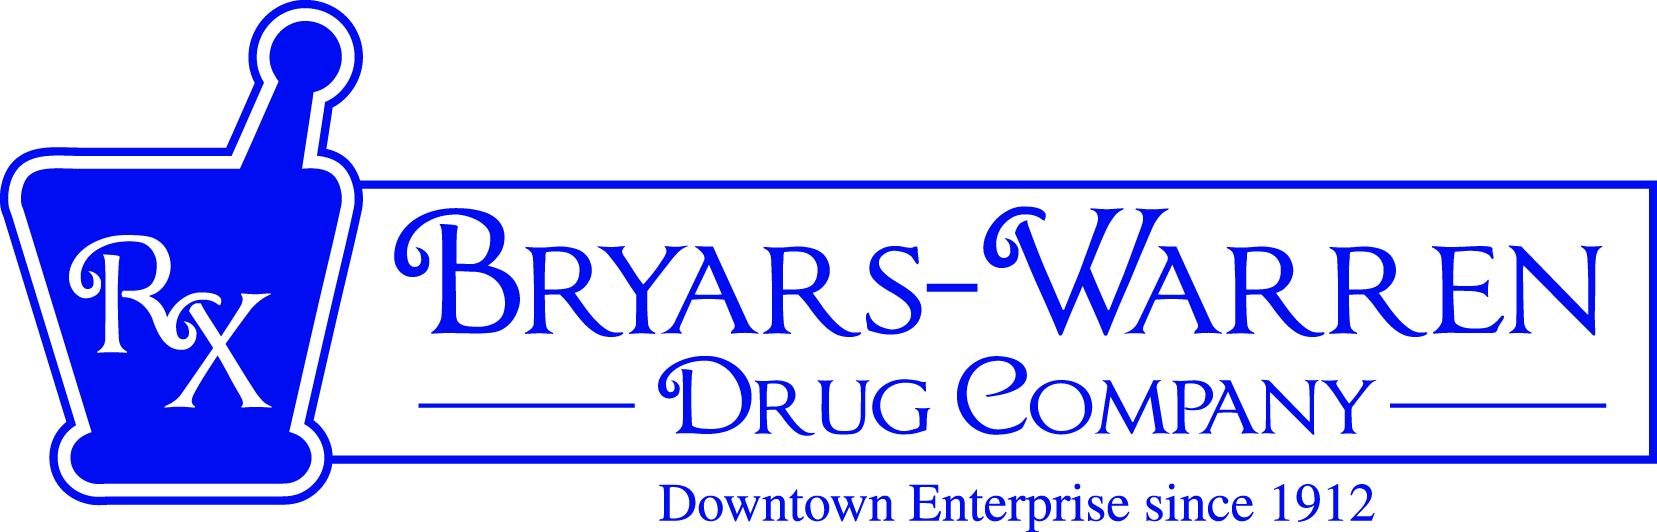 Bryars-Warren Drug Co